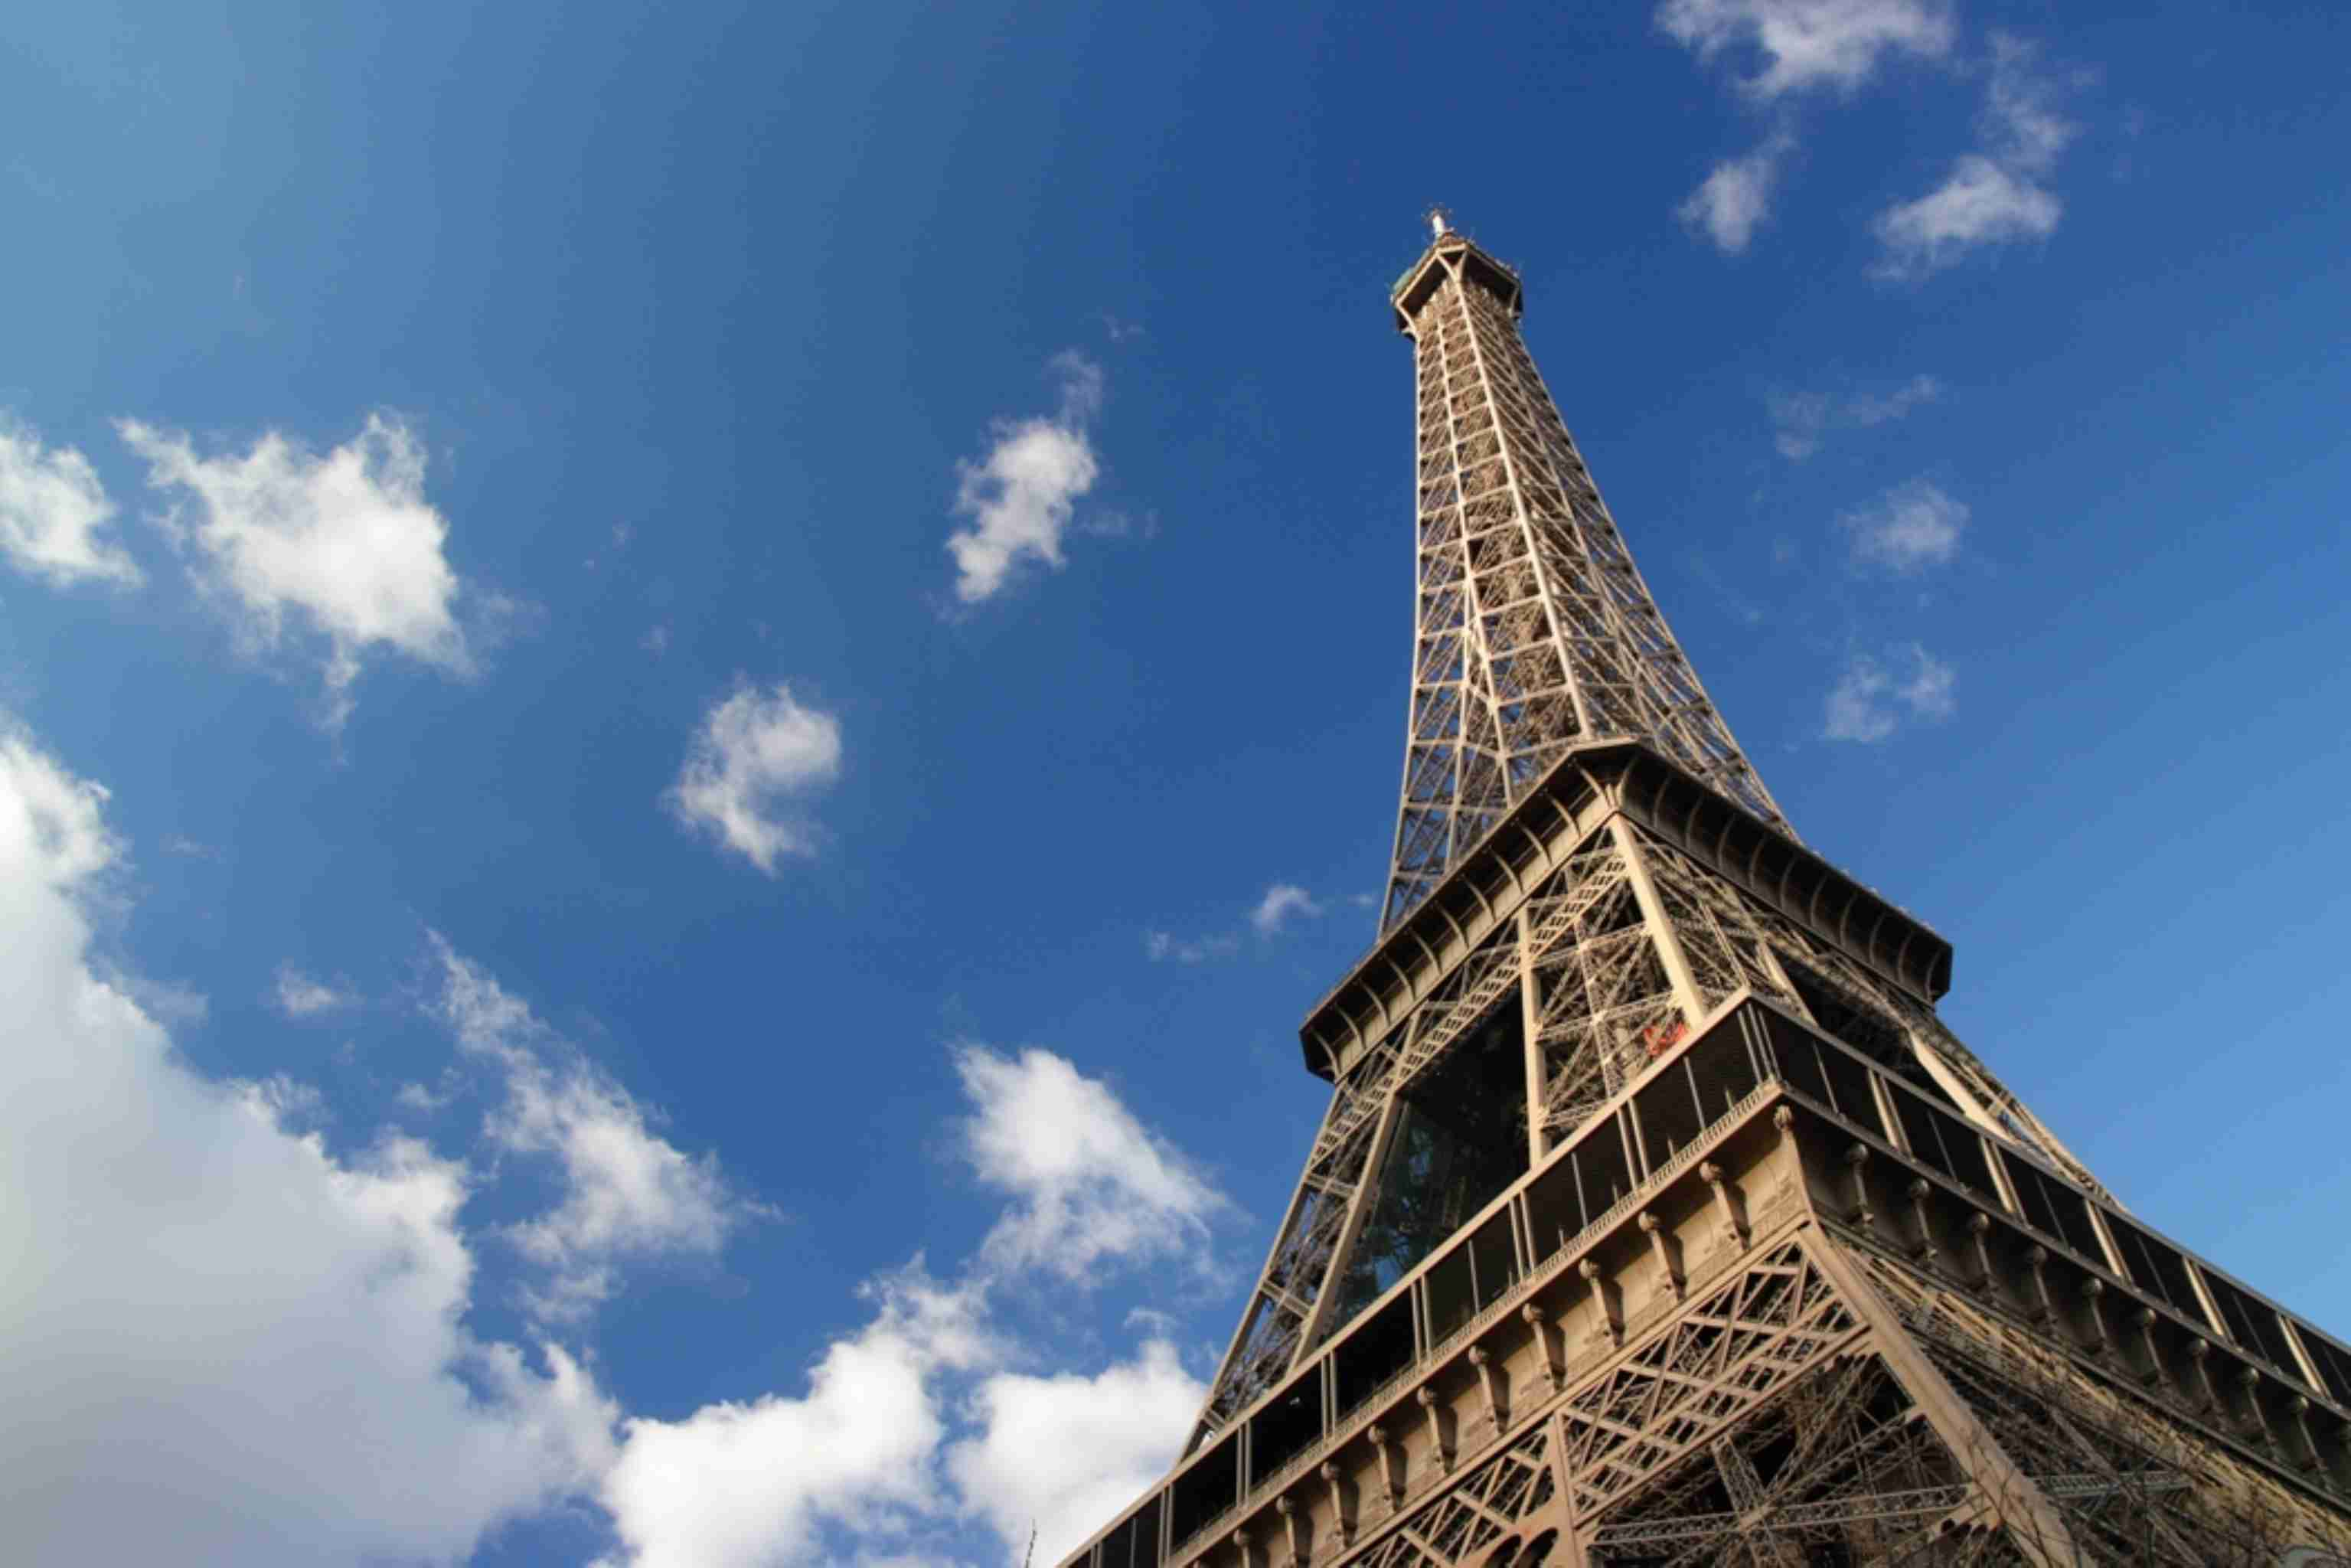 Eiffel Tower Paris France discountholiday1